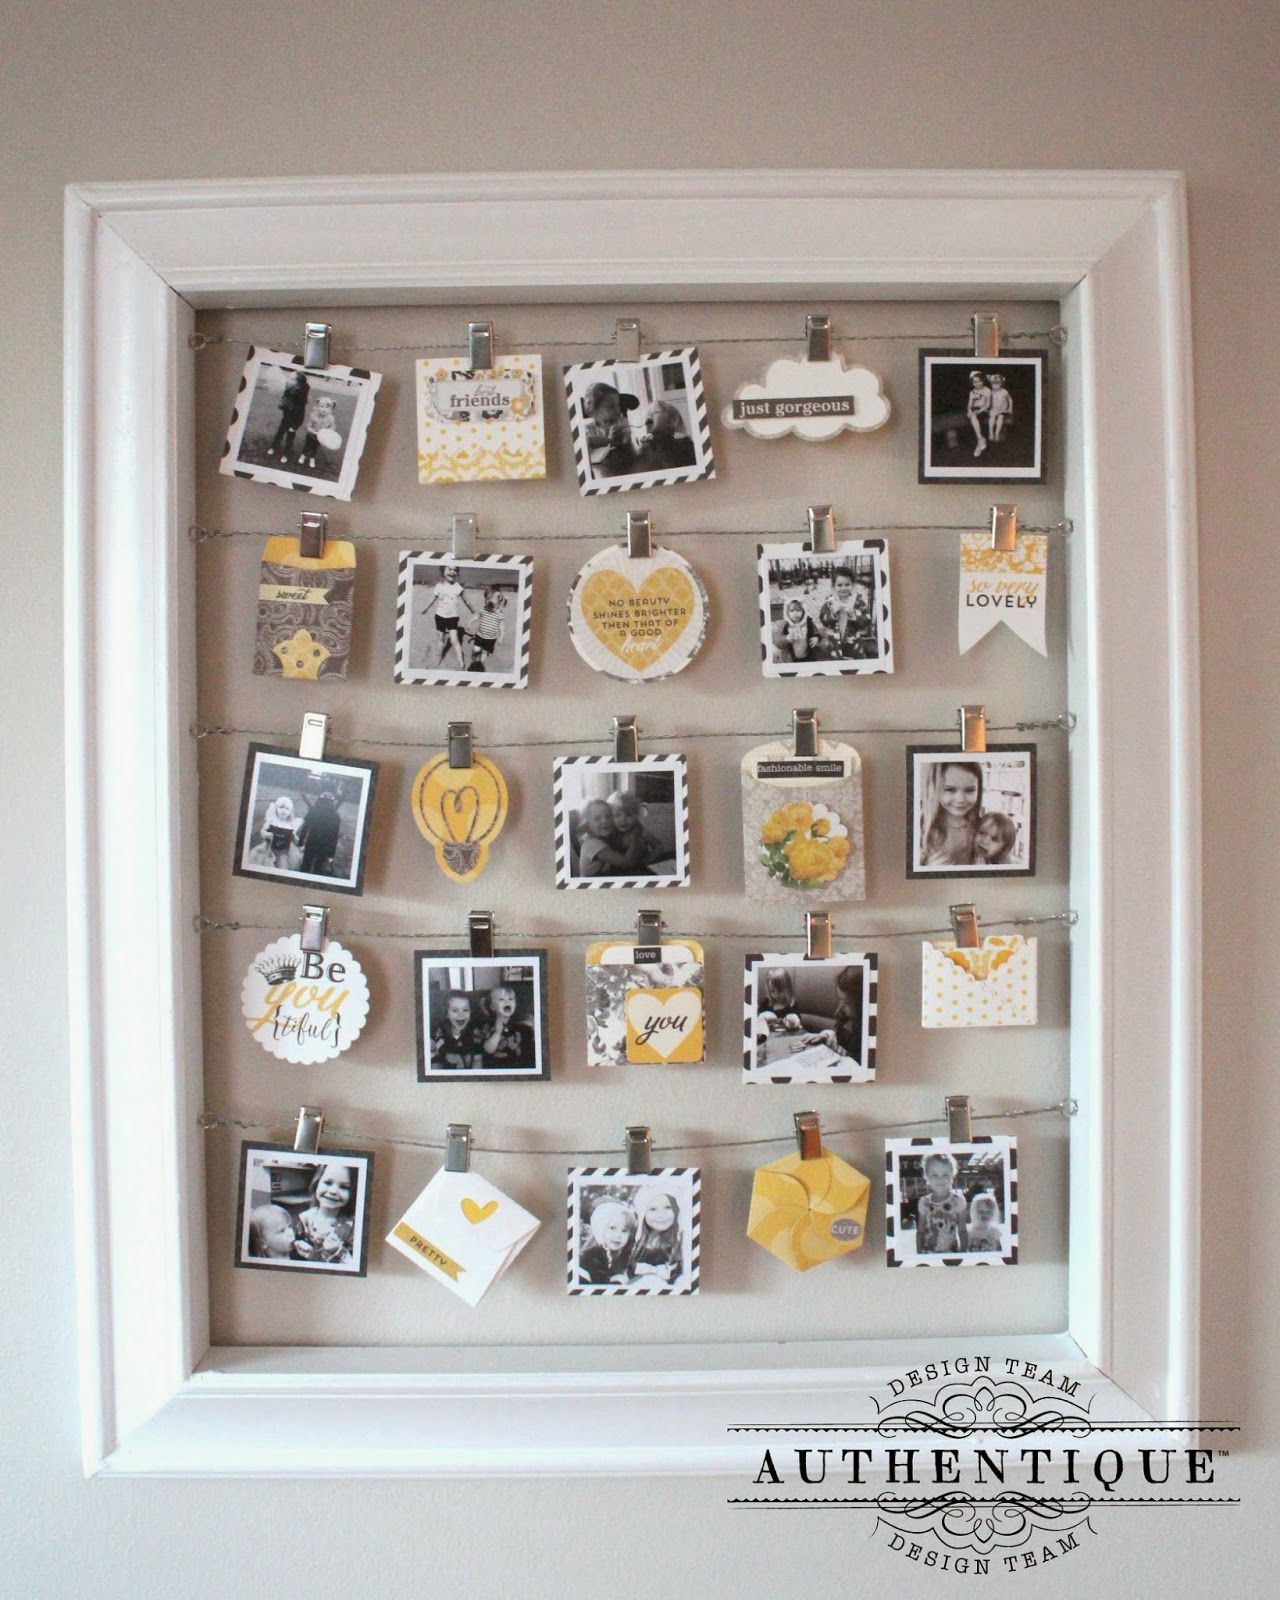 How to scrapbook at home - Authentique Paper Beautiful Home Decor With Classique Beauty